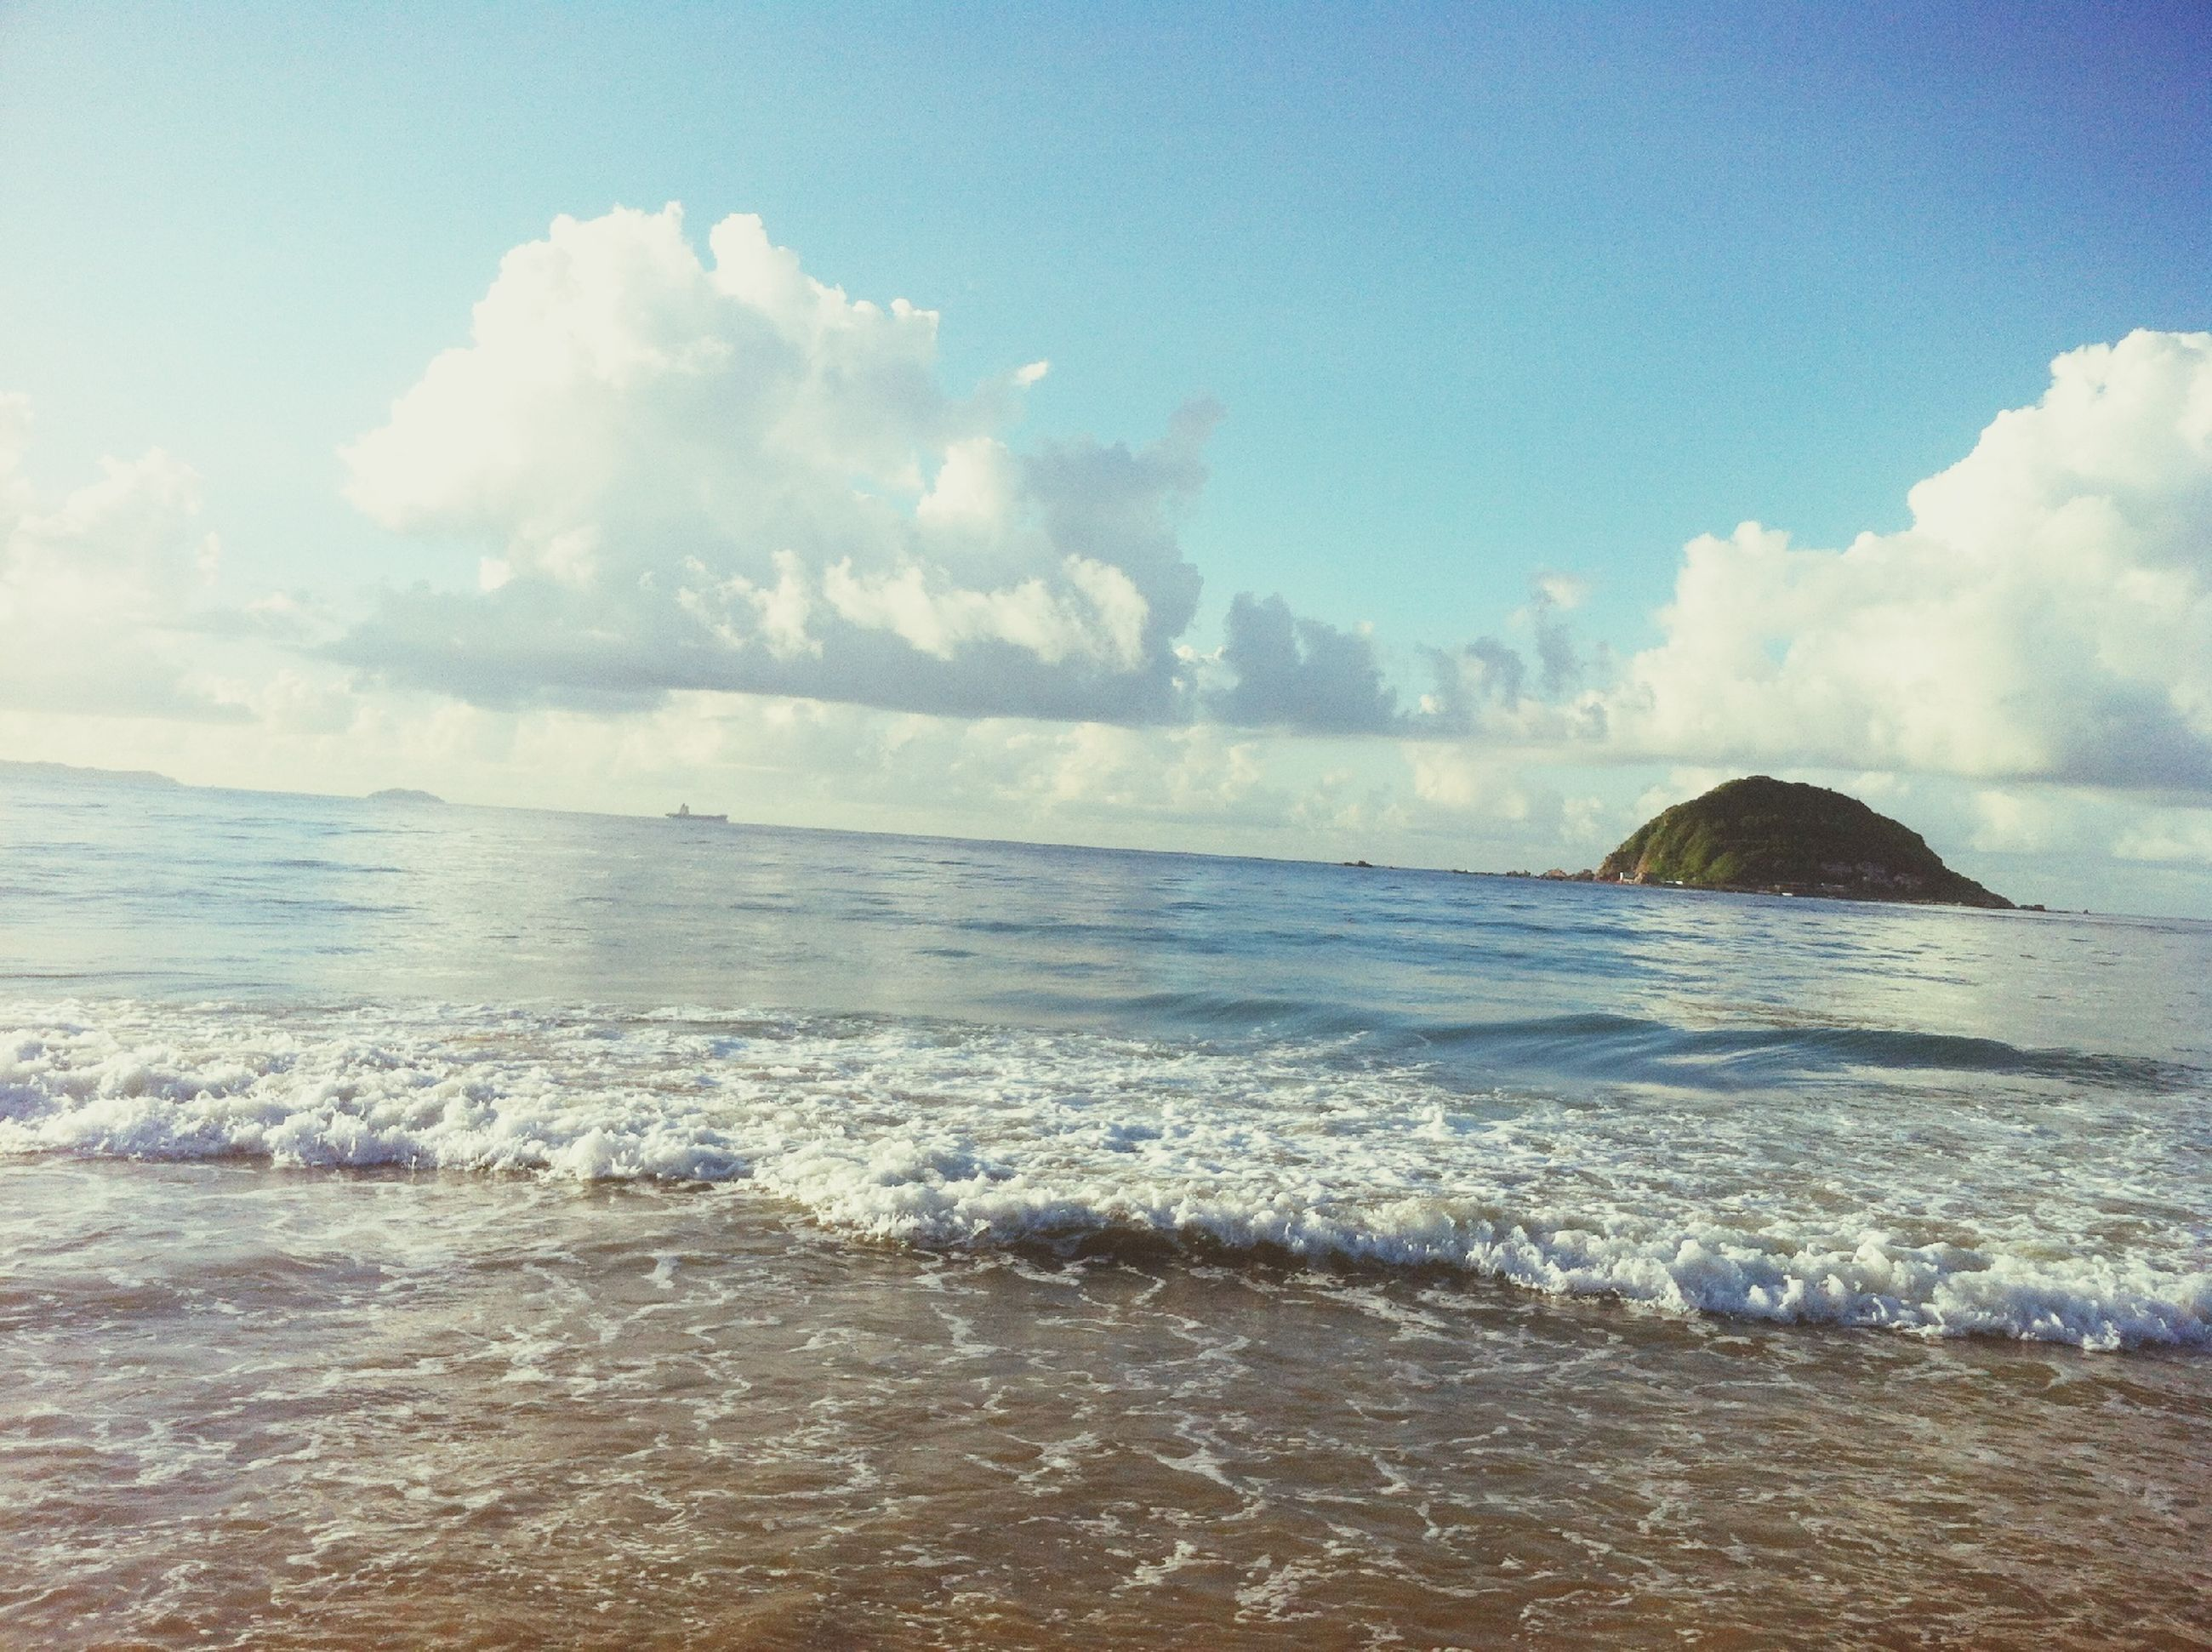 sea, water, sky, beach, scenics, horizon over water, wave, beauty in nature, tranquil scene, shore, surf, cloud - sky, tranquility, nature, idyllic, cloud, rock - object, cloudy, sand, motion